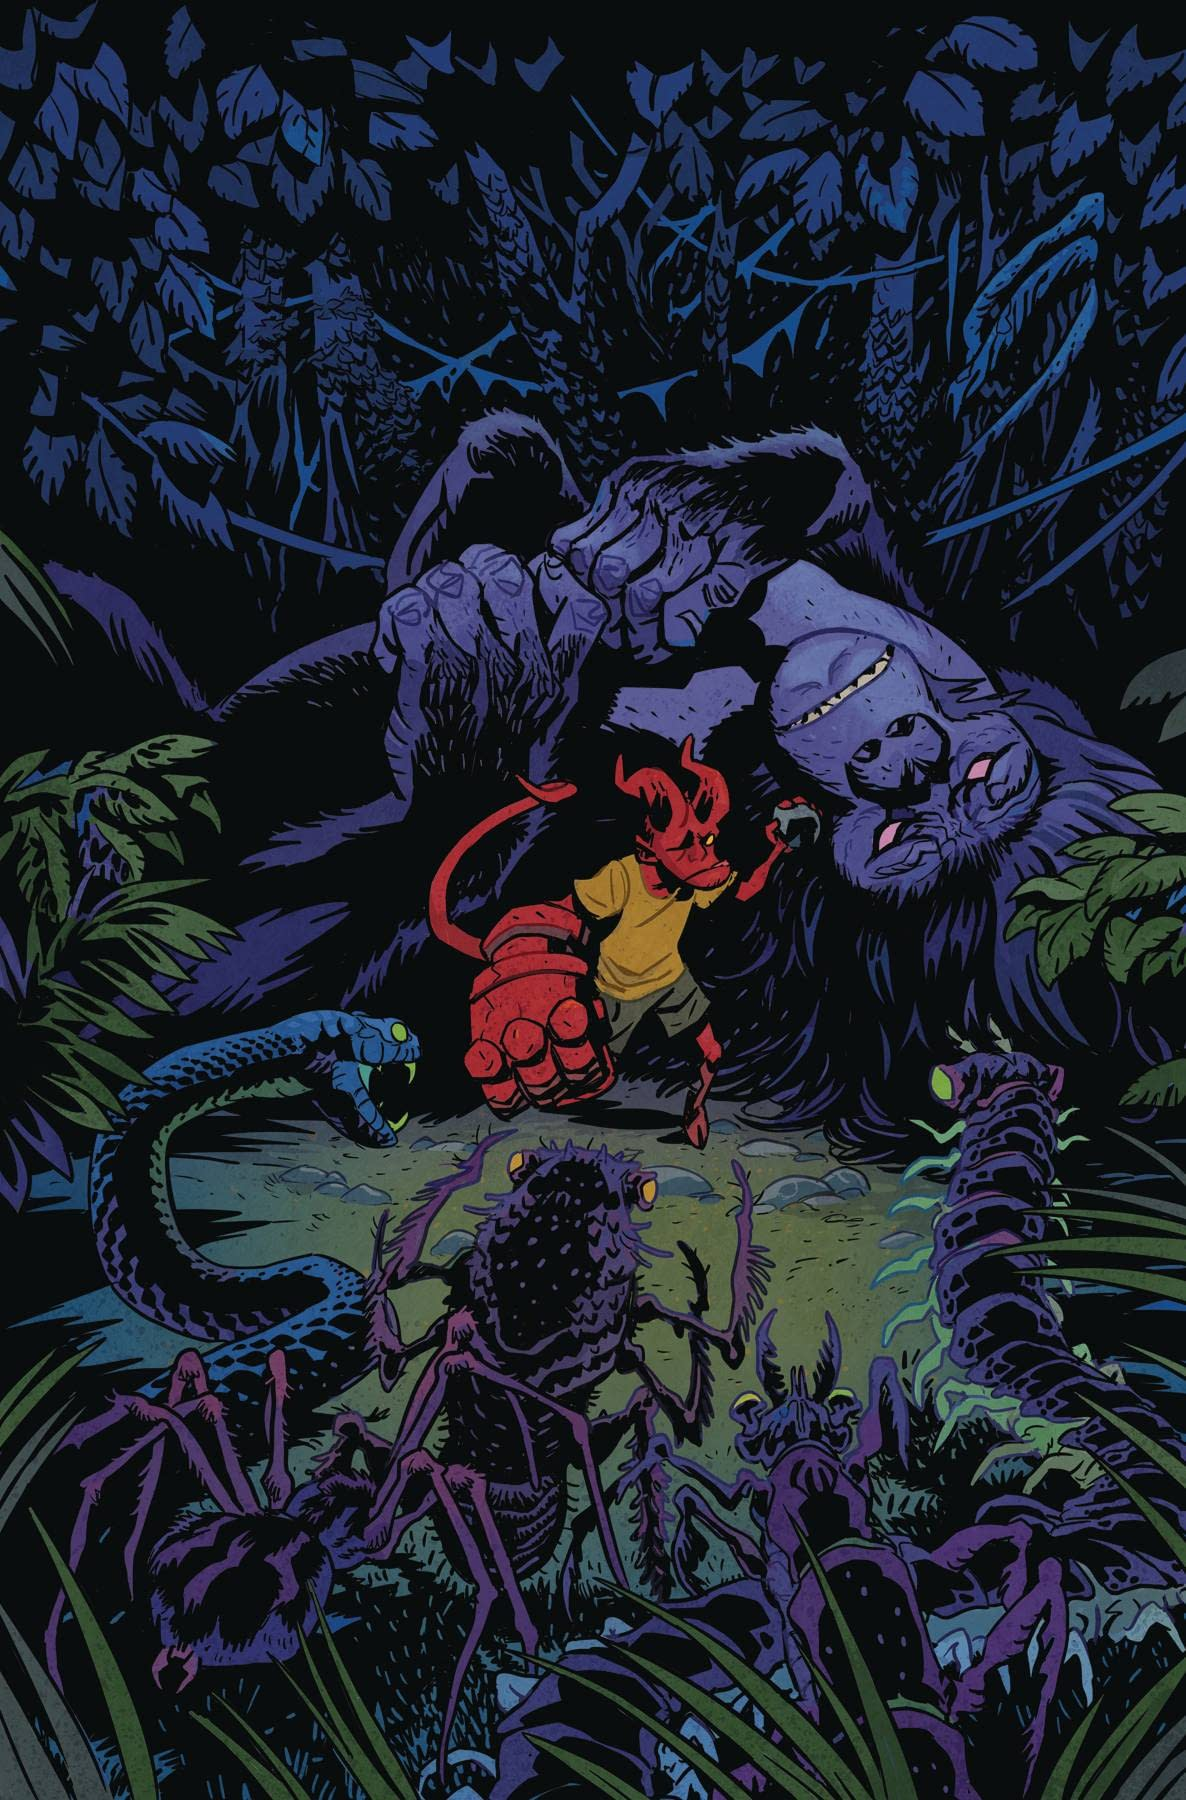 Dark Horse - YOUNG HELLBOY THE HIDDEN LAND #4 (OF 4) CVR A SMITH